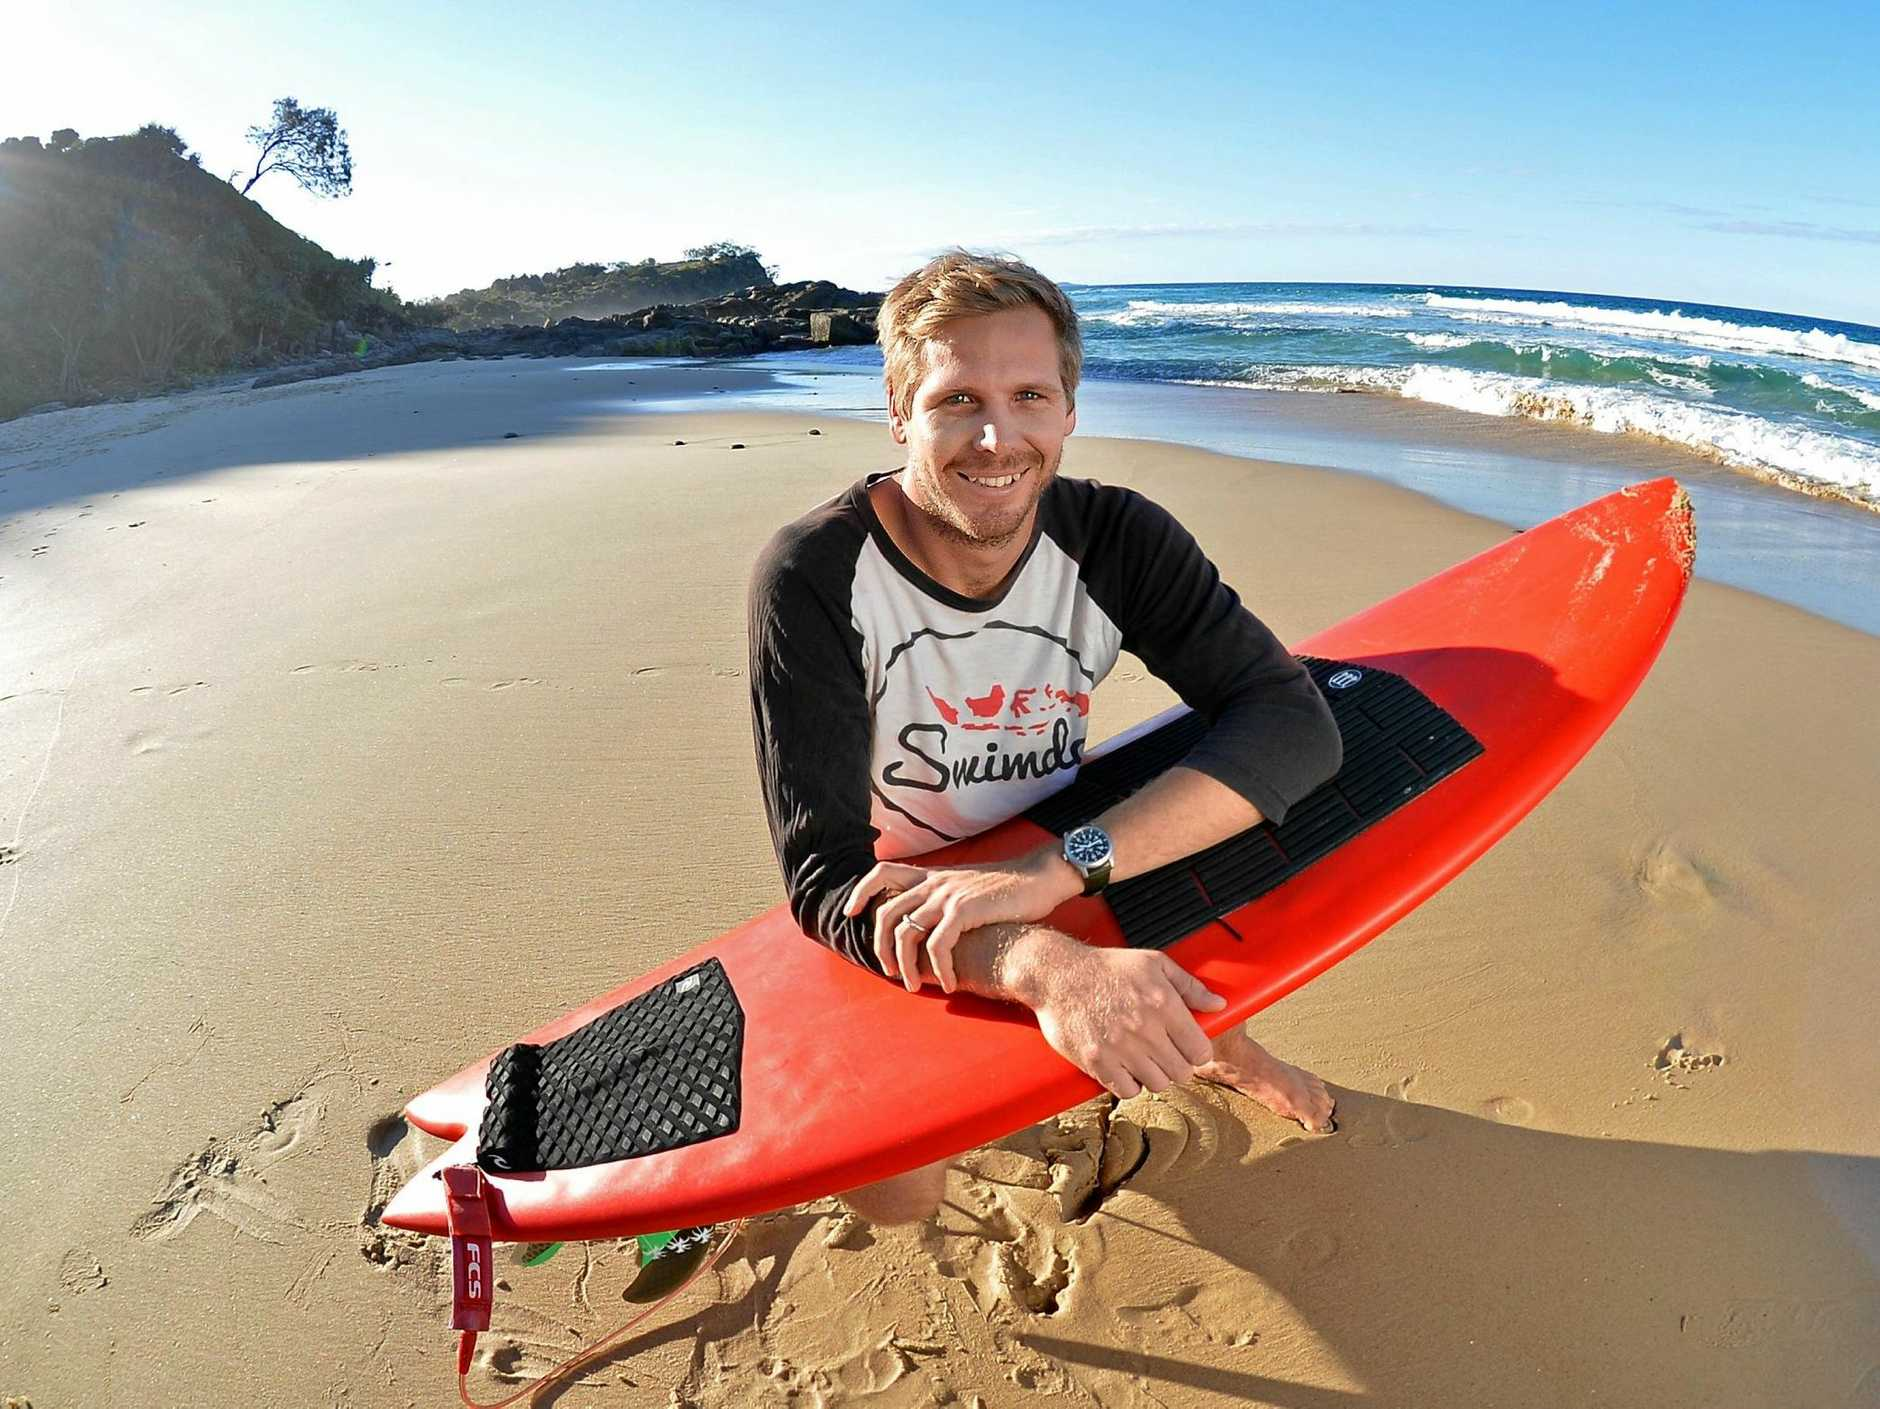 SWIMDO IN INDO: Seamus Pettigrew hopes to spread the word of his organisation that teaches kids in small Indonesia villages how to swim.